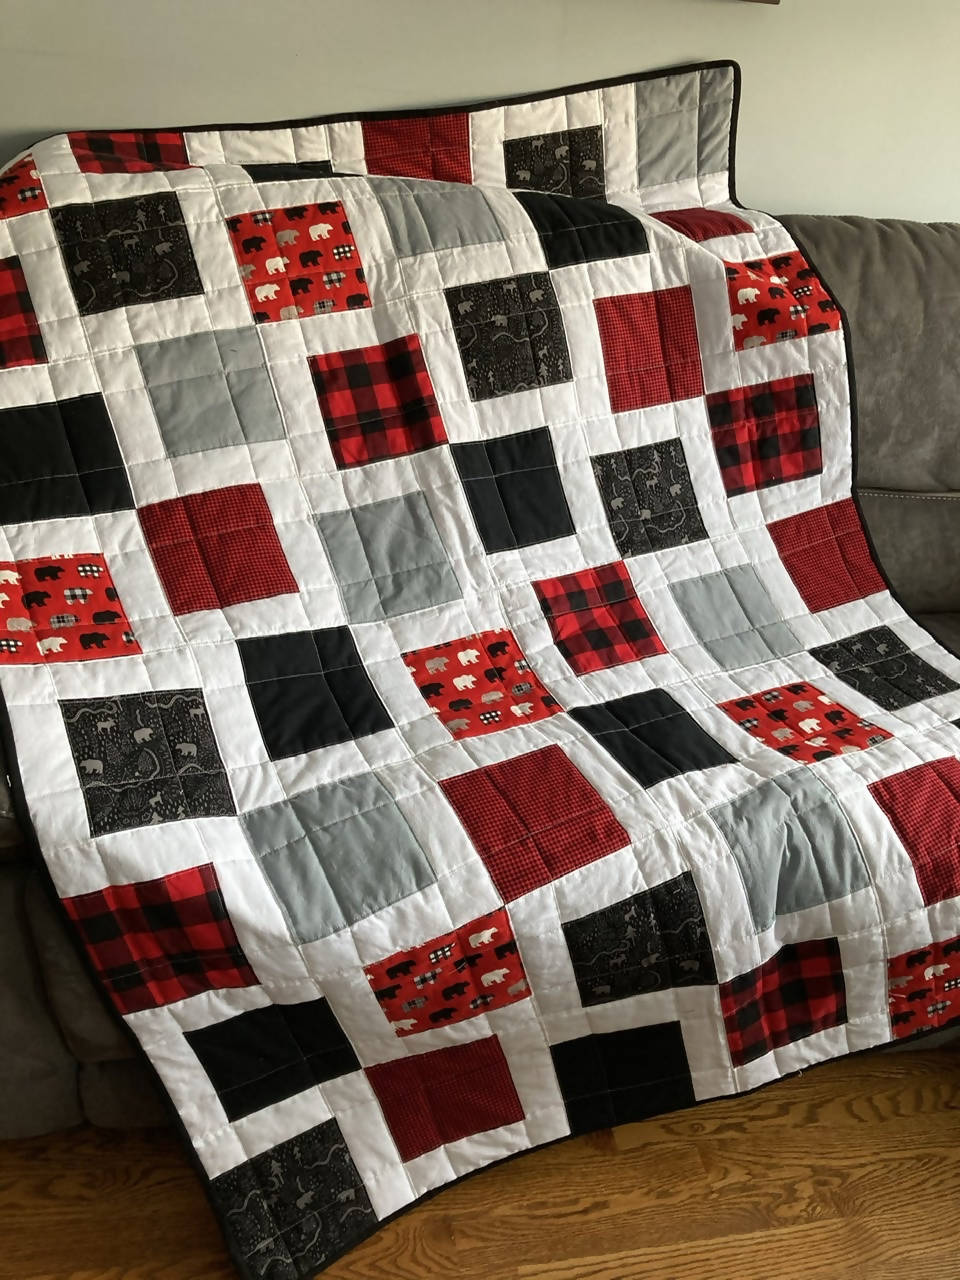 Couch quilt, white, red, black and grey